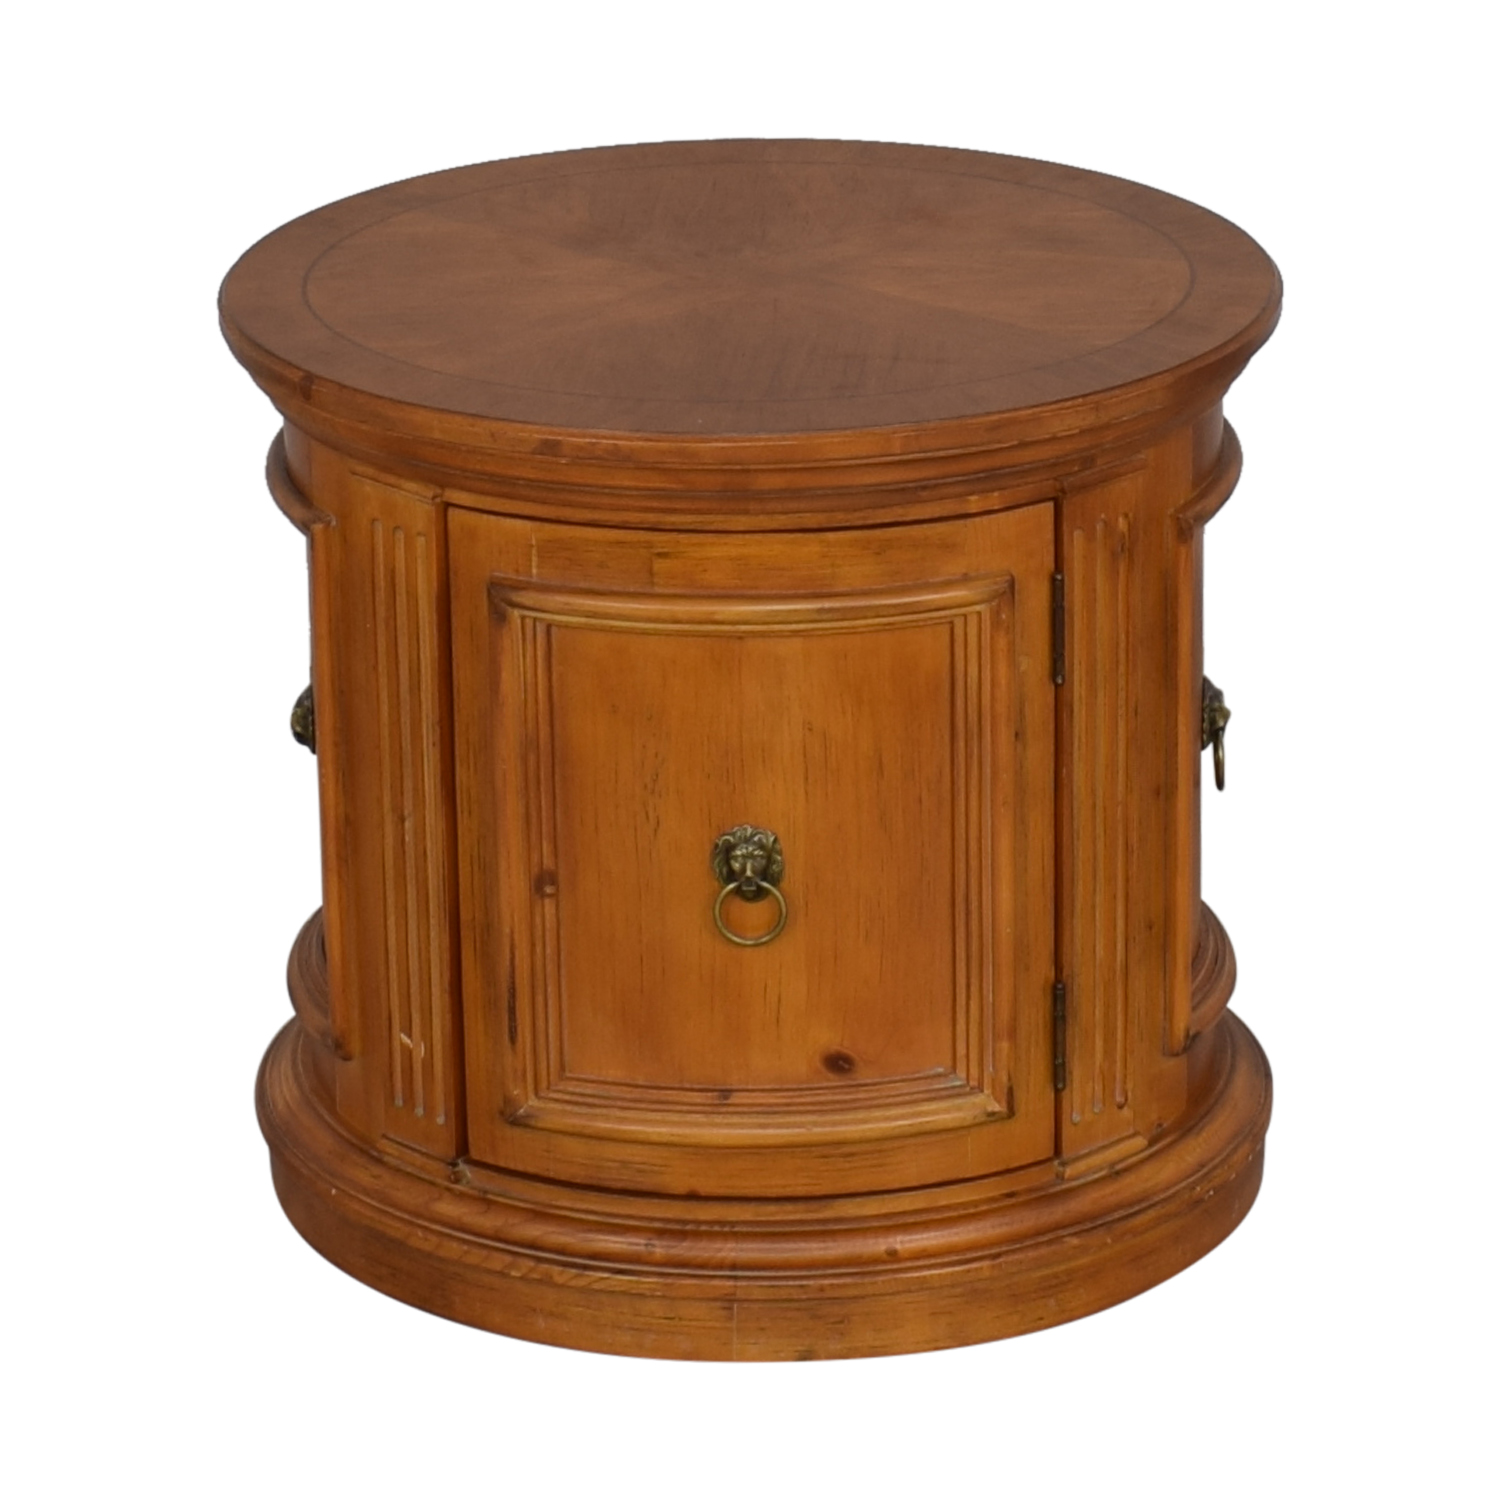 Ethan Allen Ethan Allen Legacy Drum End Table nyc